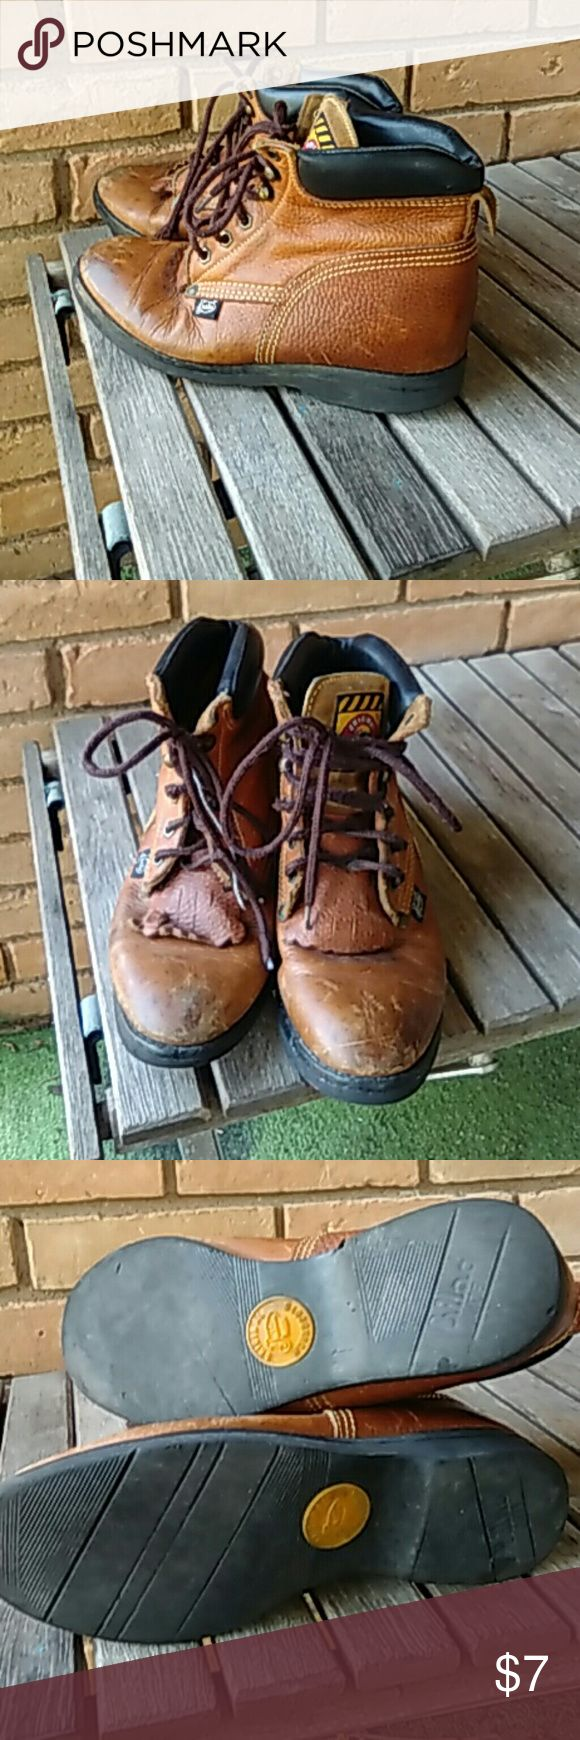 Justin work boot Justin workbook lace up,great shape justin Shoes Boots